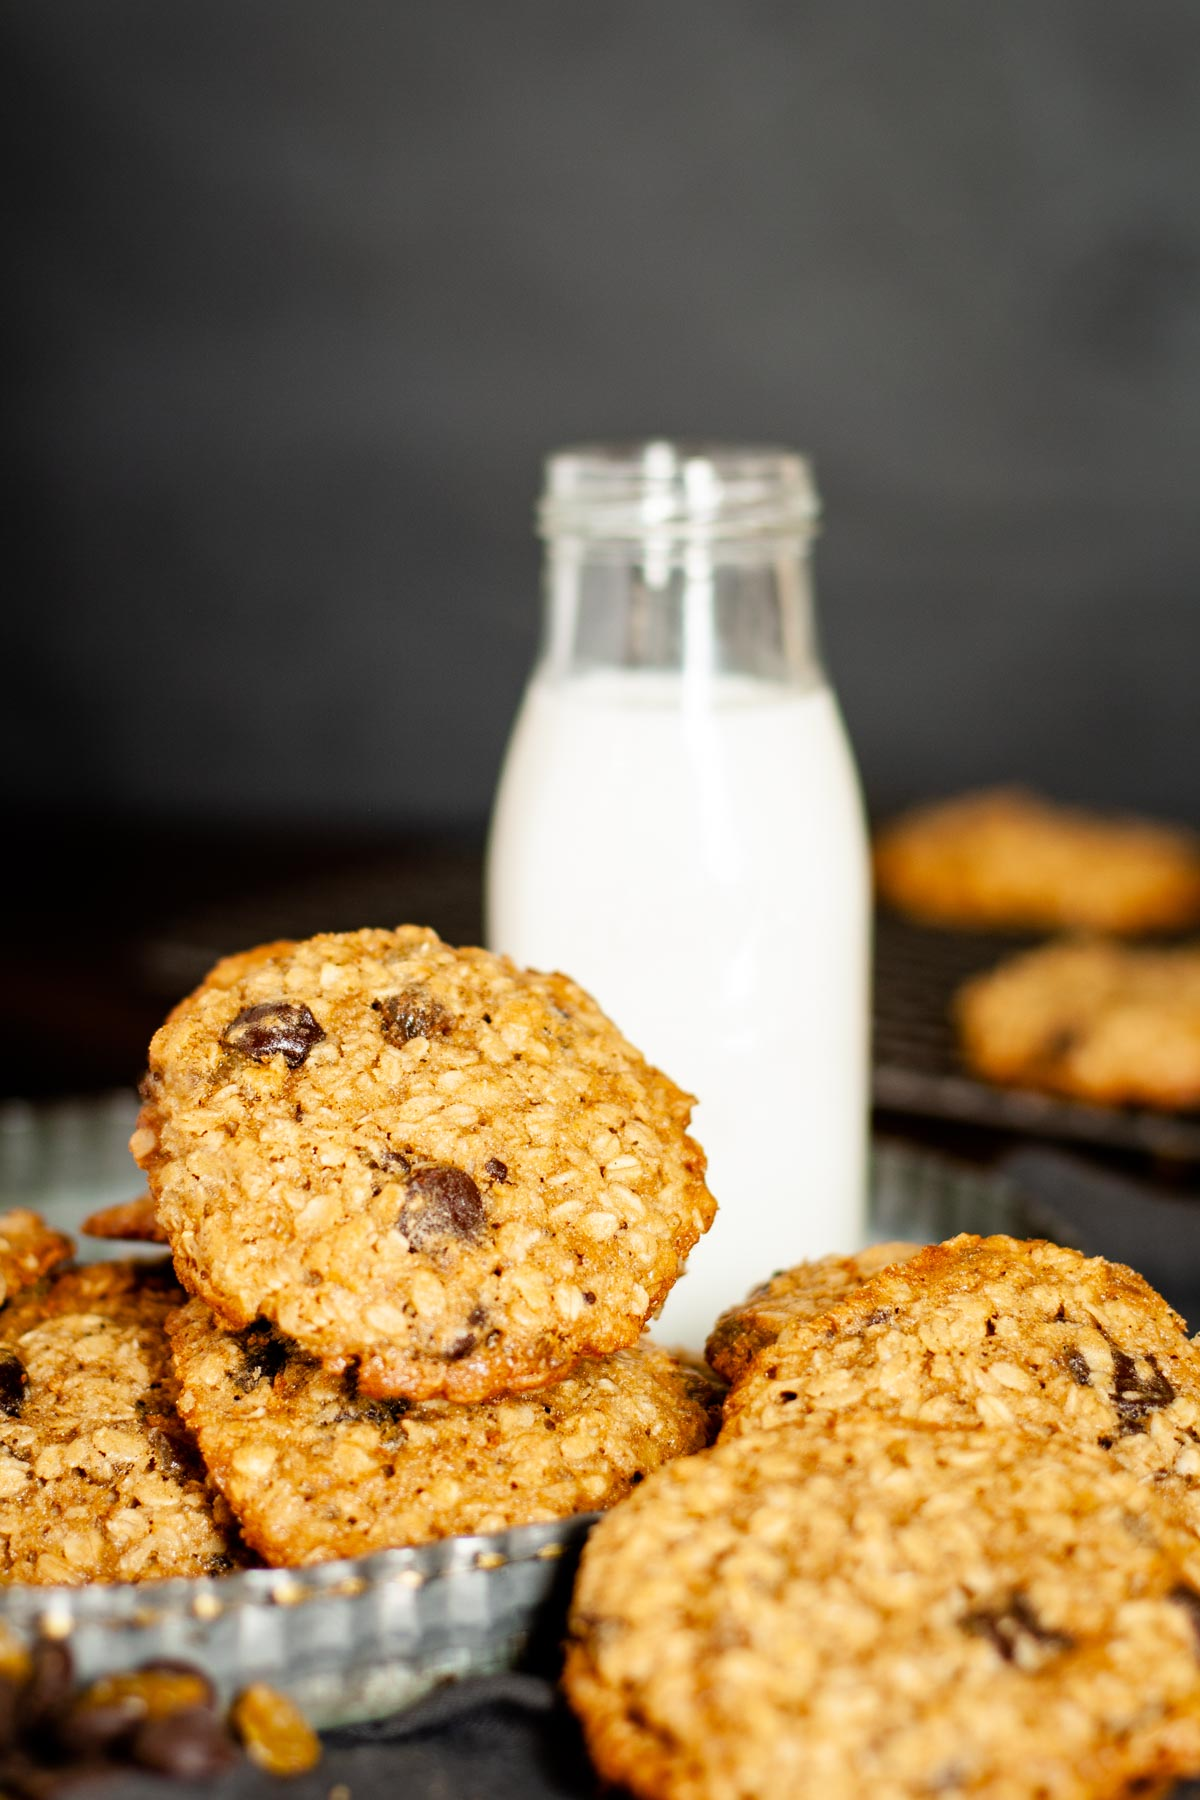 Golden Raisin Oatmeal cookies with chocolate chips in a stack next to milk